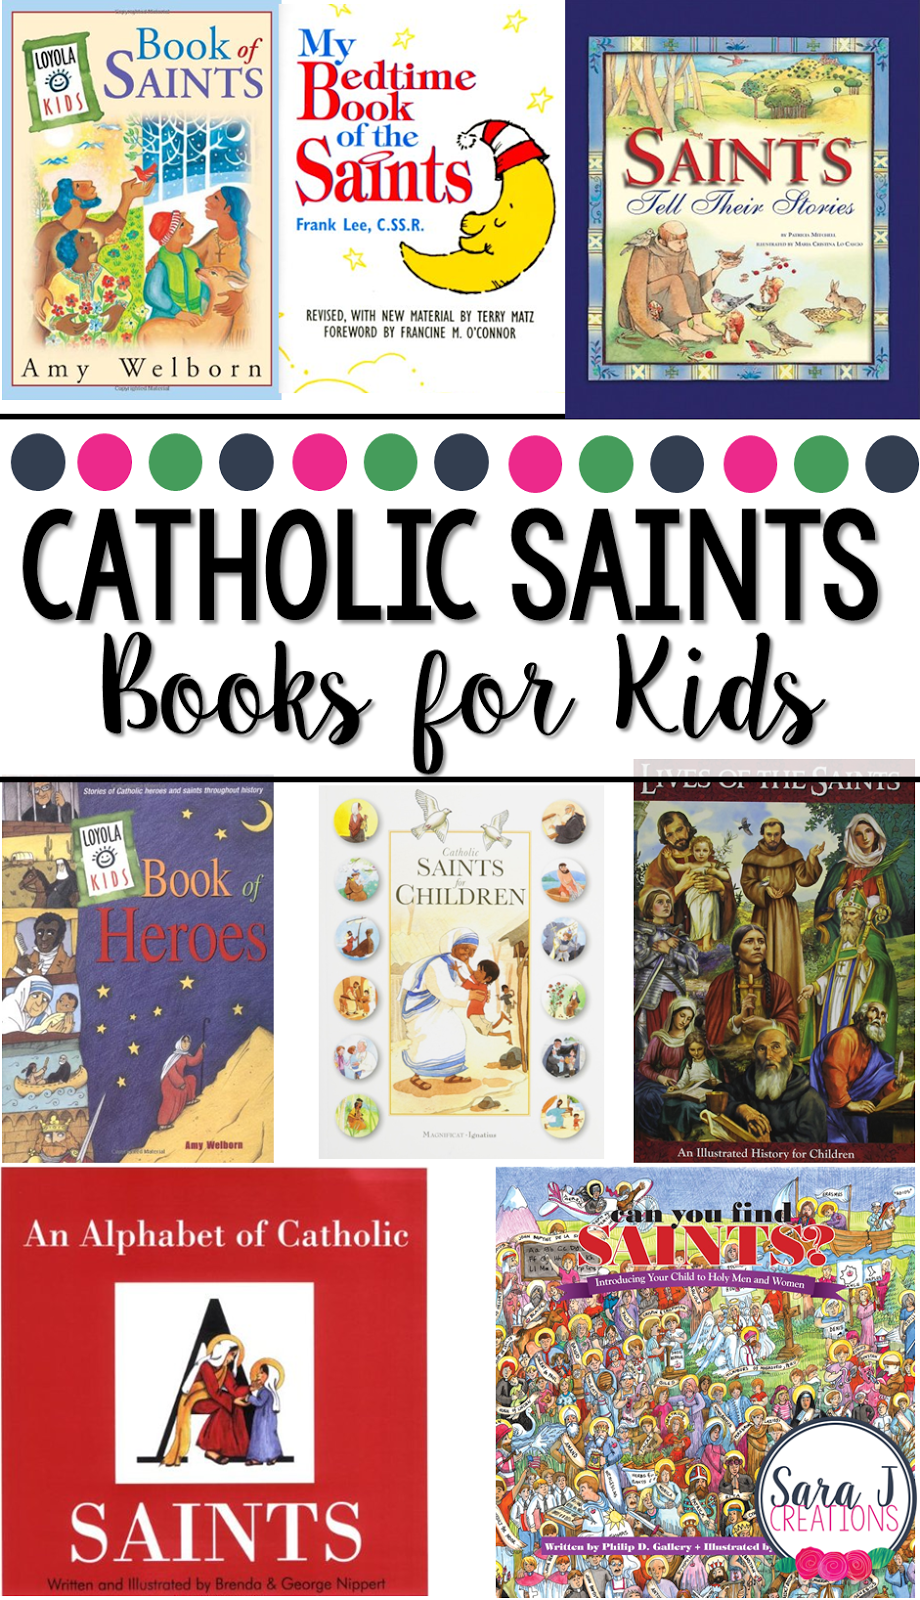 I like this list of eight books to teach kids about Catholic Saints.  So helpful when teaching children the faith.